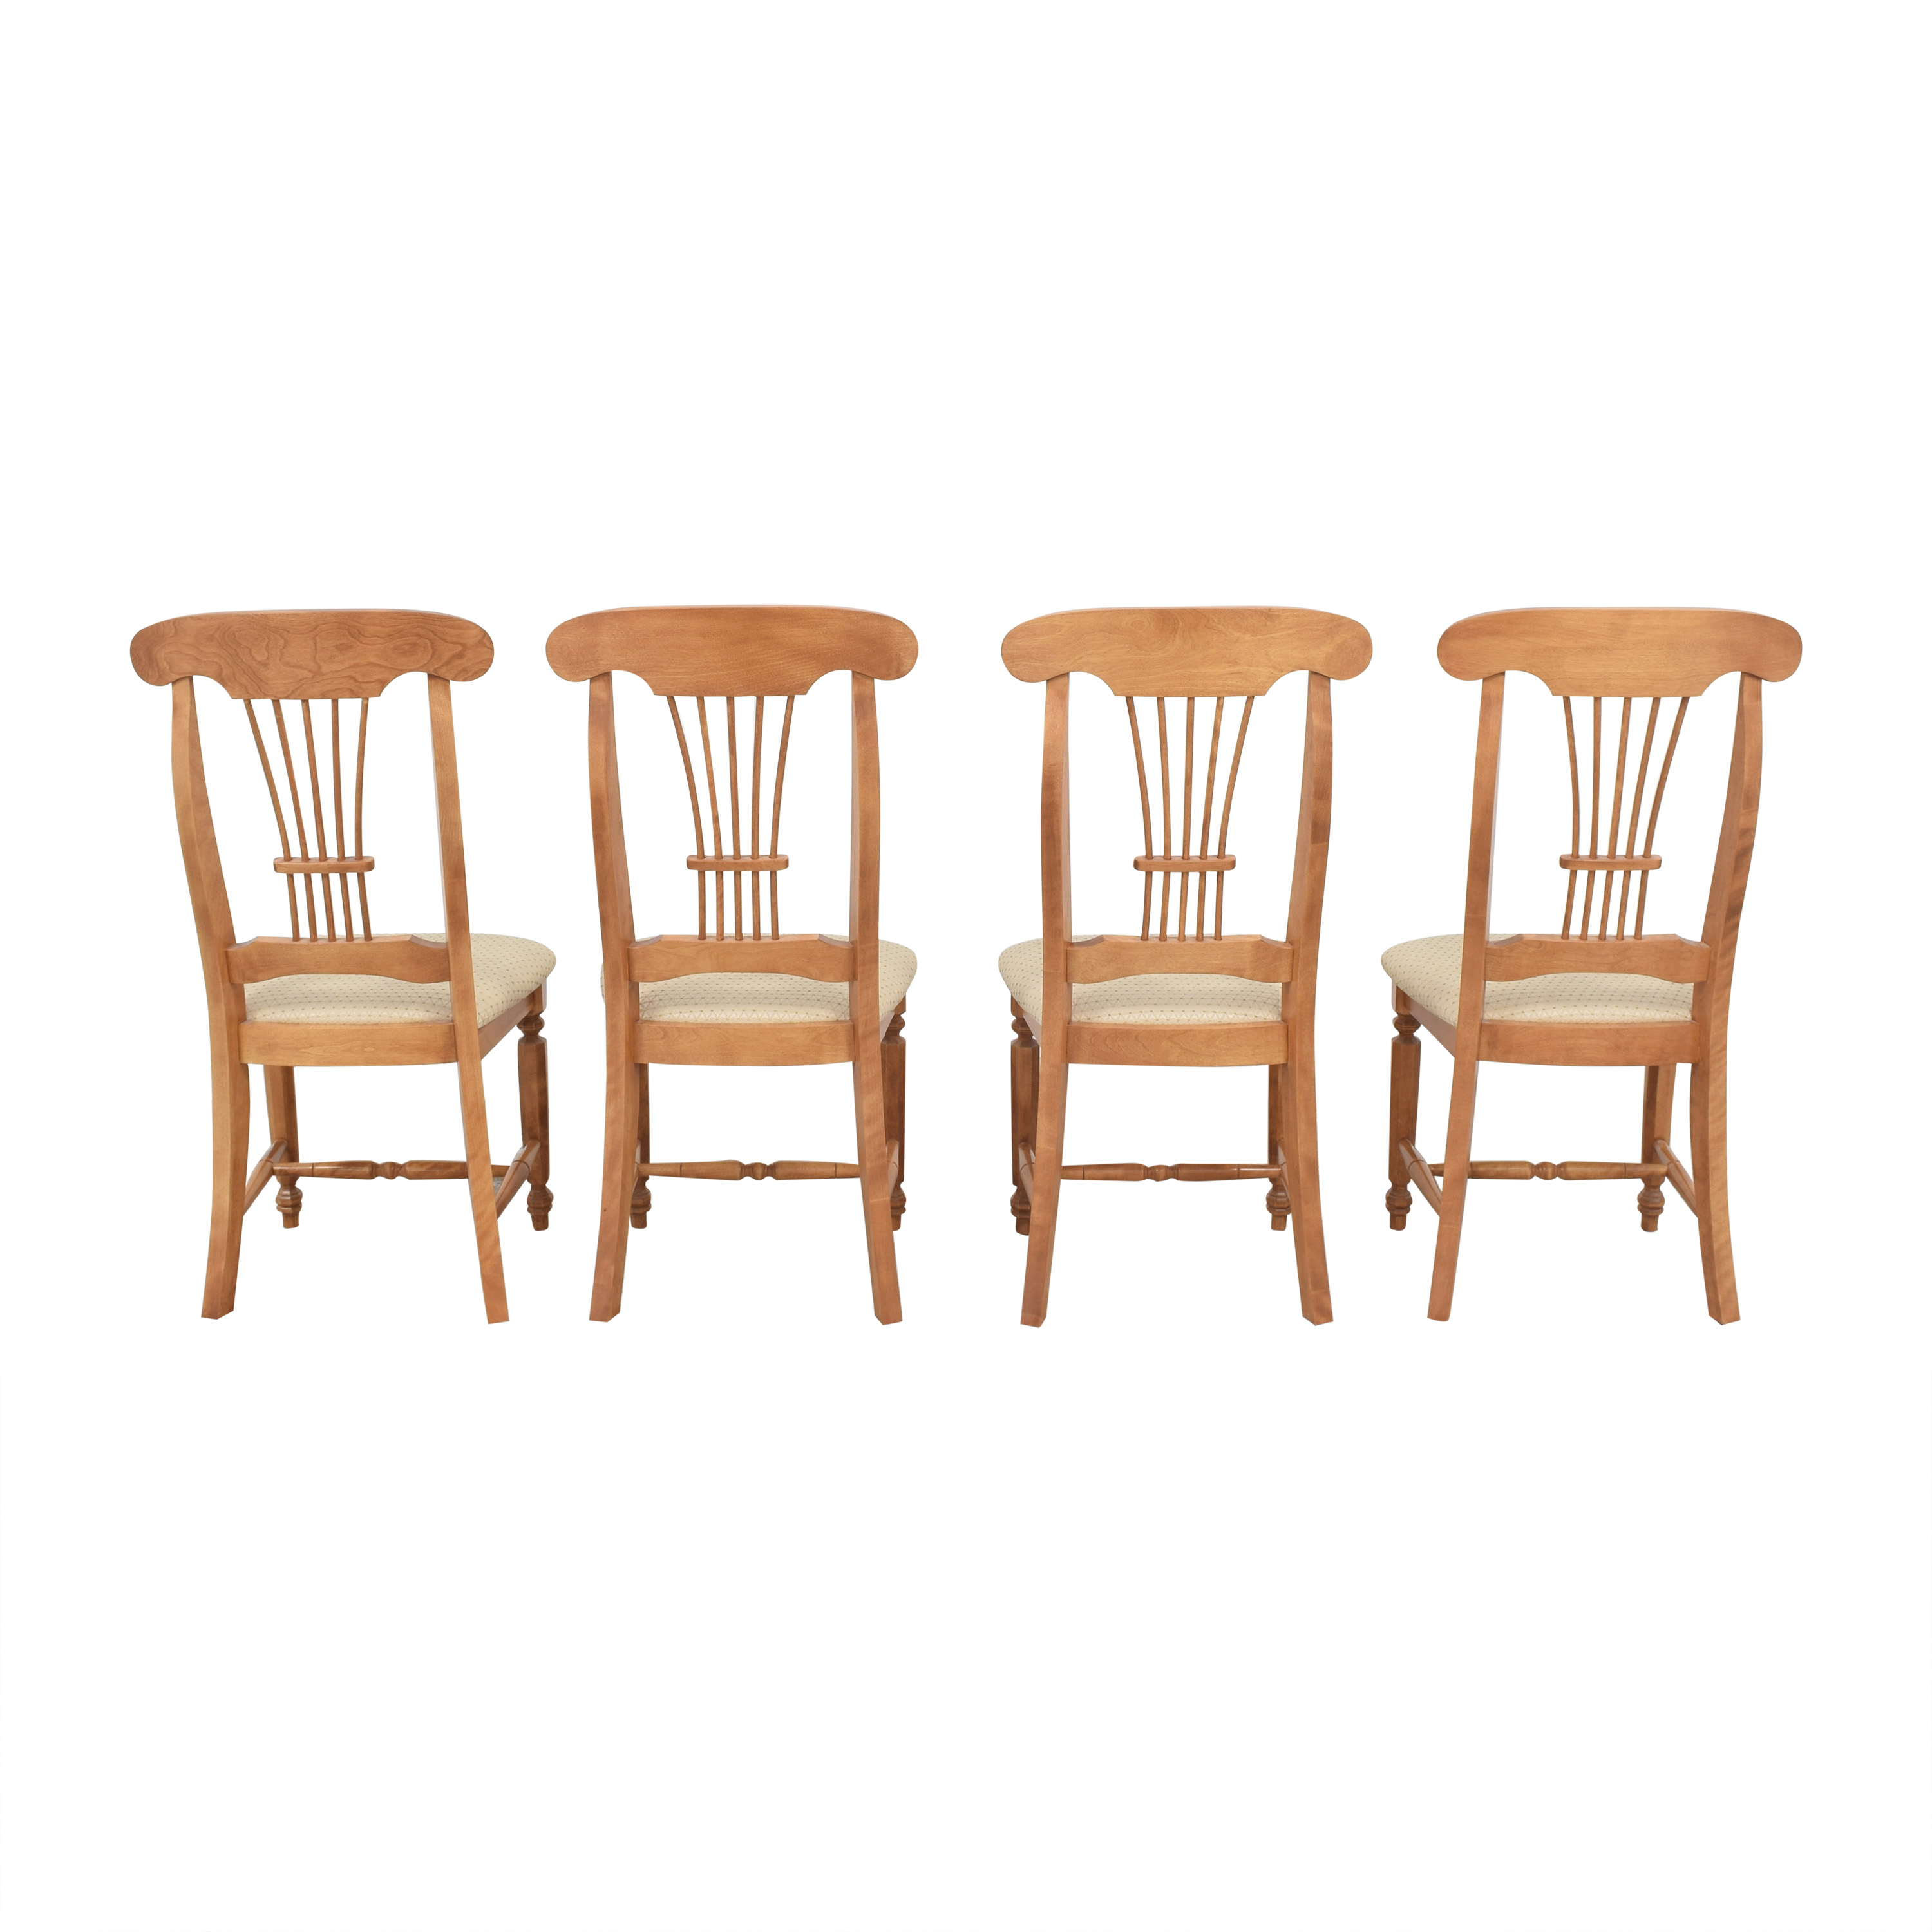 buy Canadel Upholstered Dining Chairs Canadel Dining Chairs